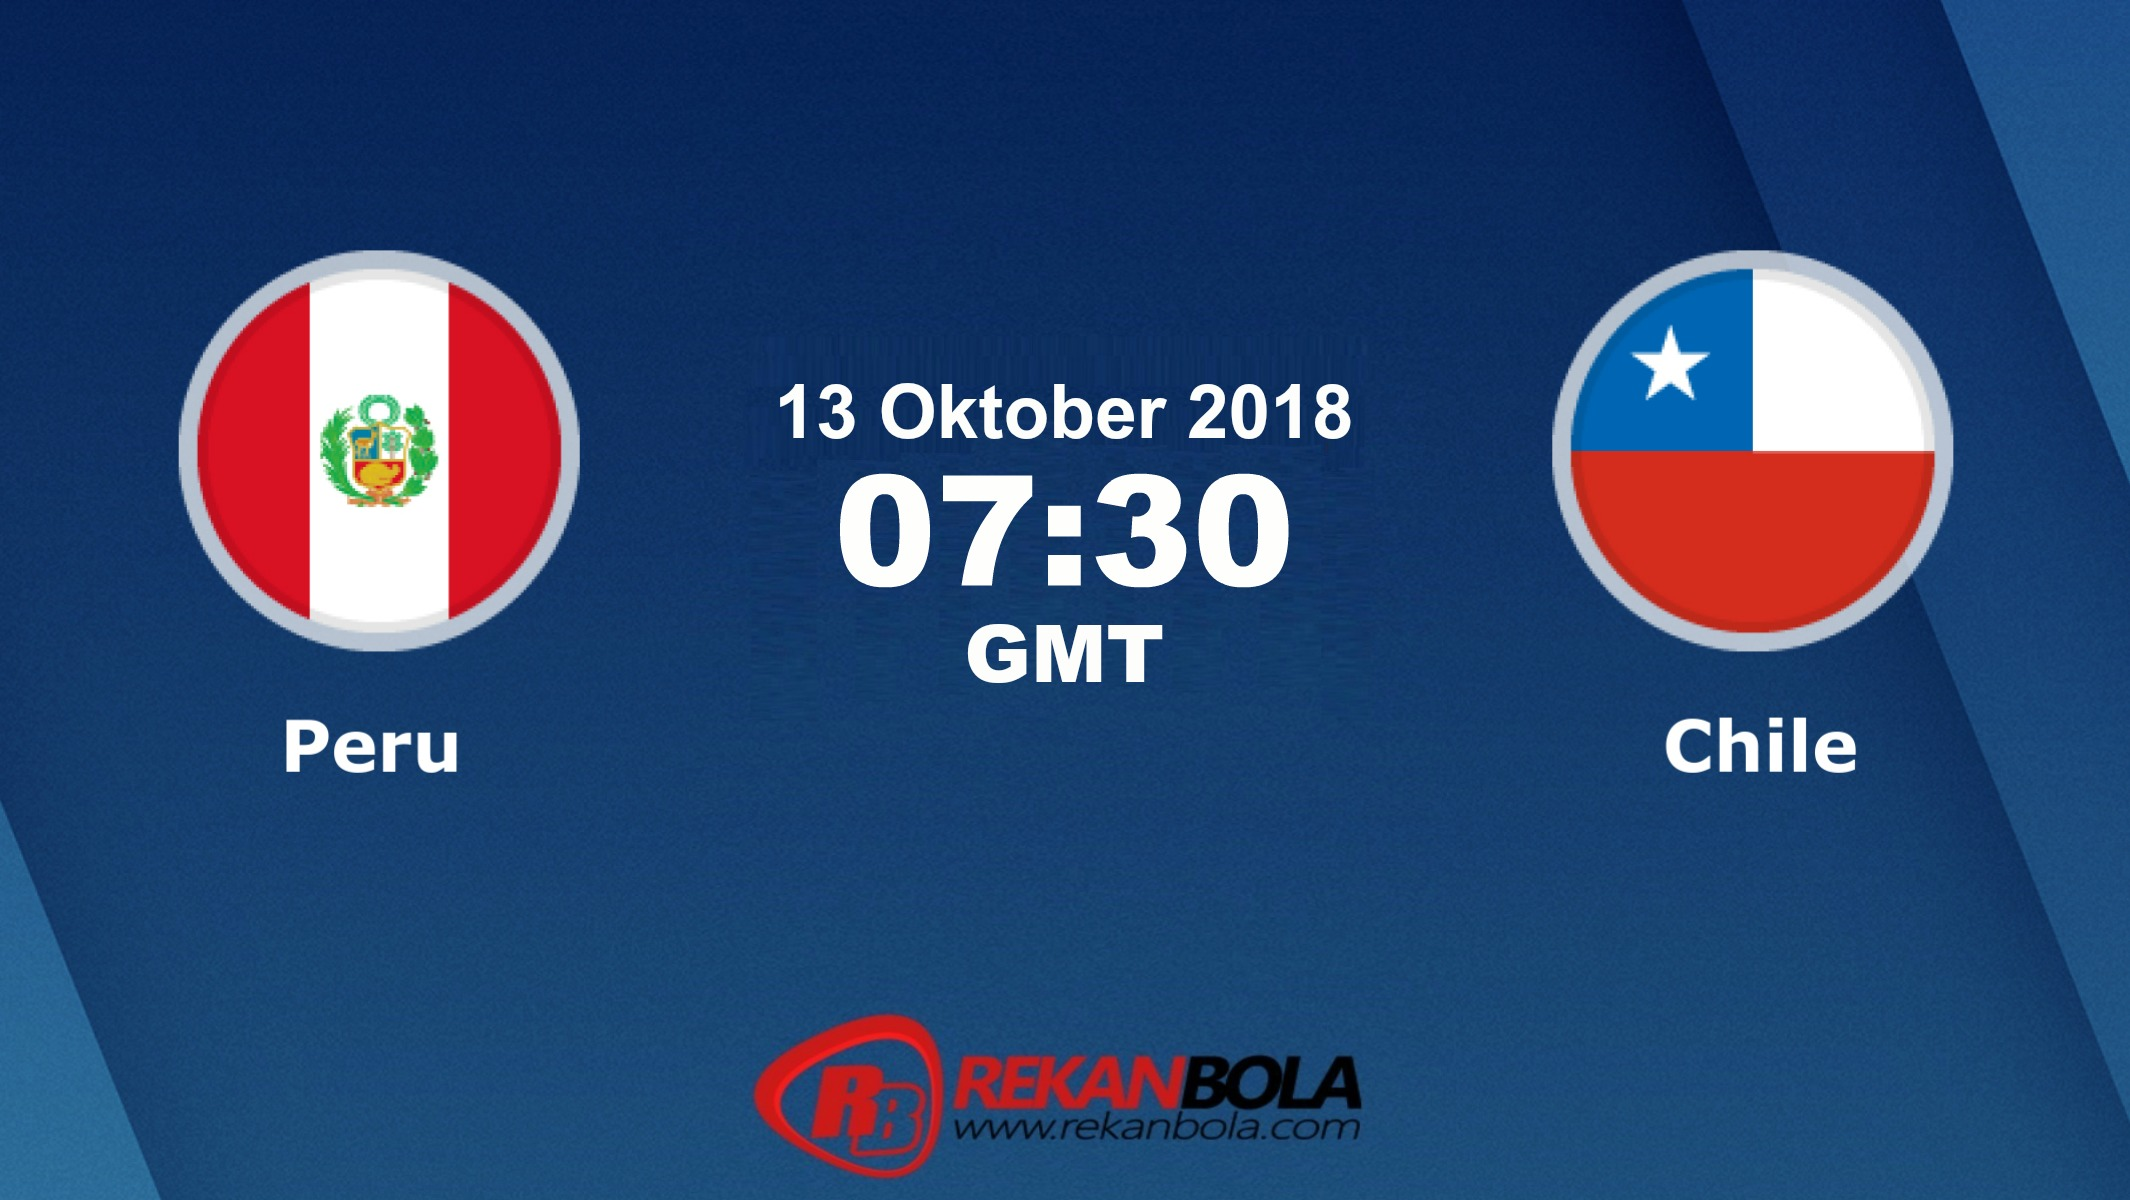 Nonton Siaran Live Streaming Peru Vs Chili 13 Oktober 2018